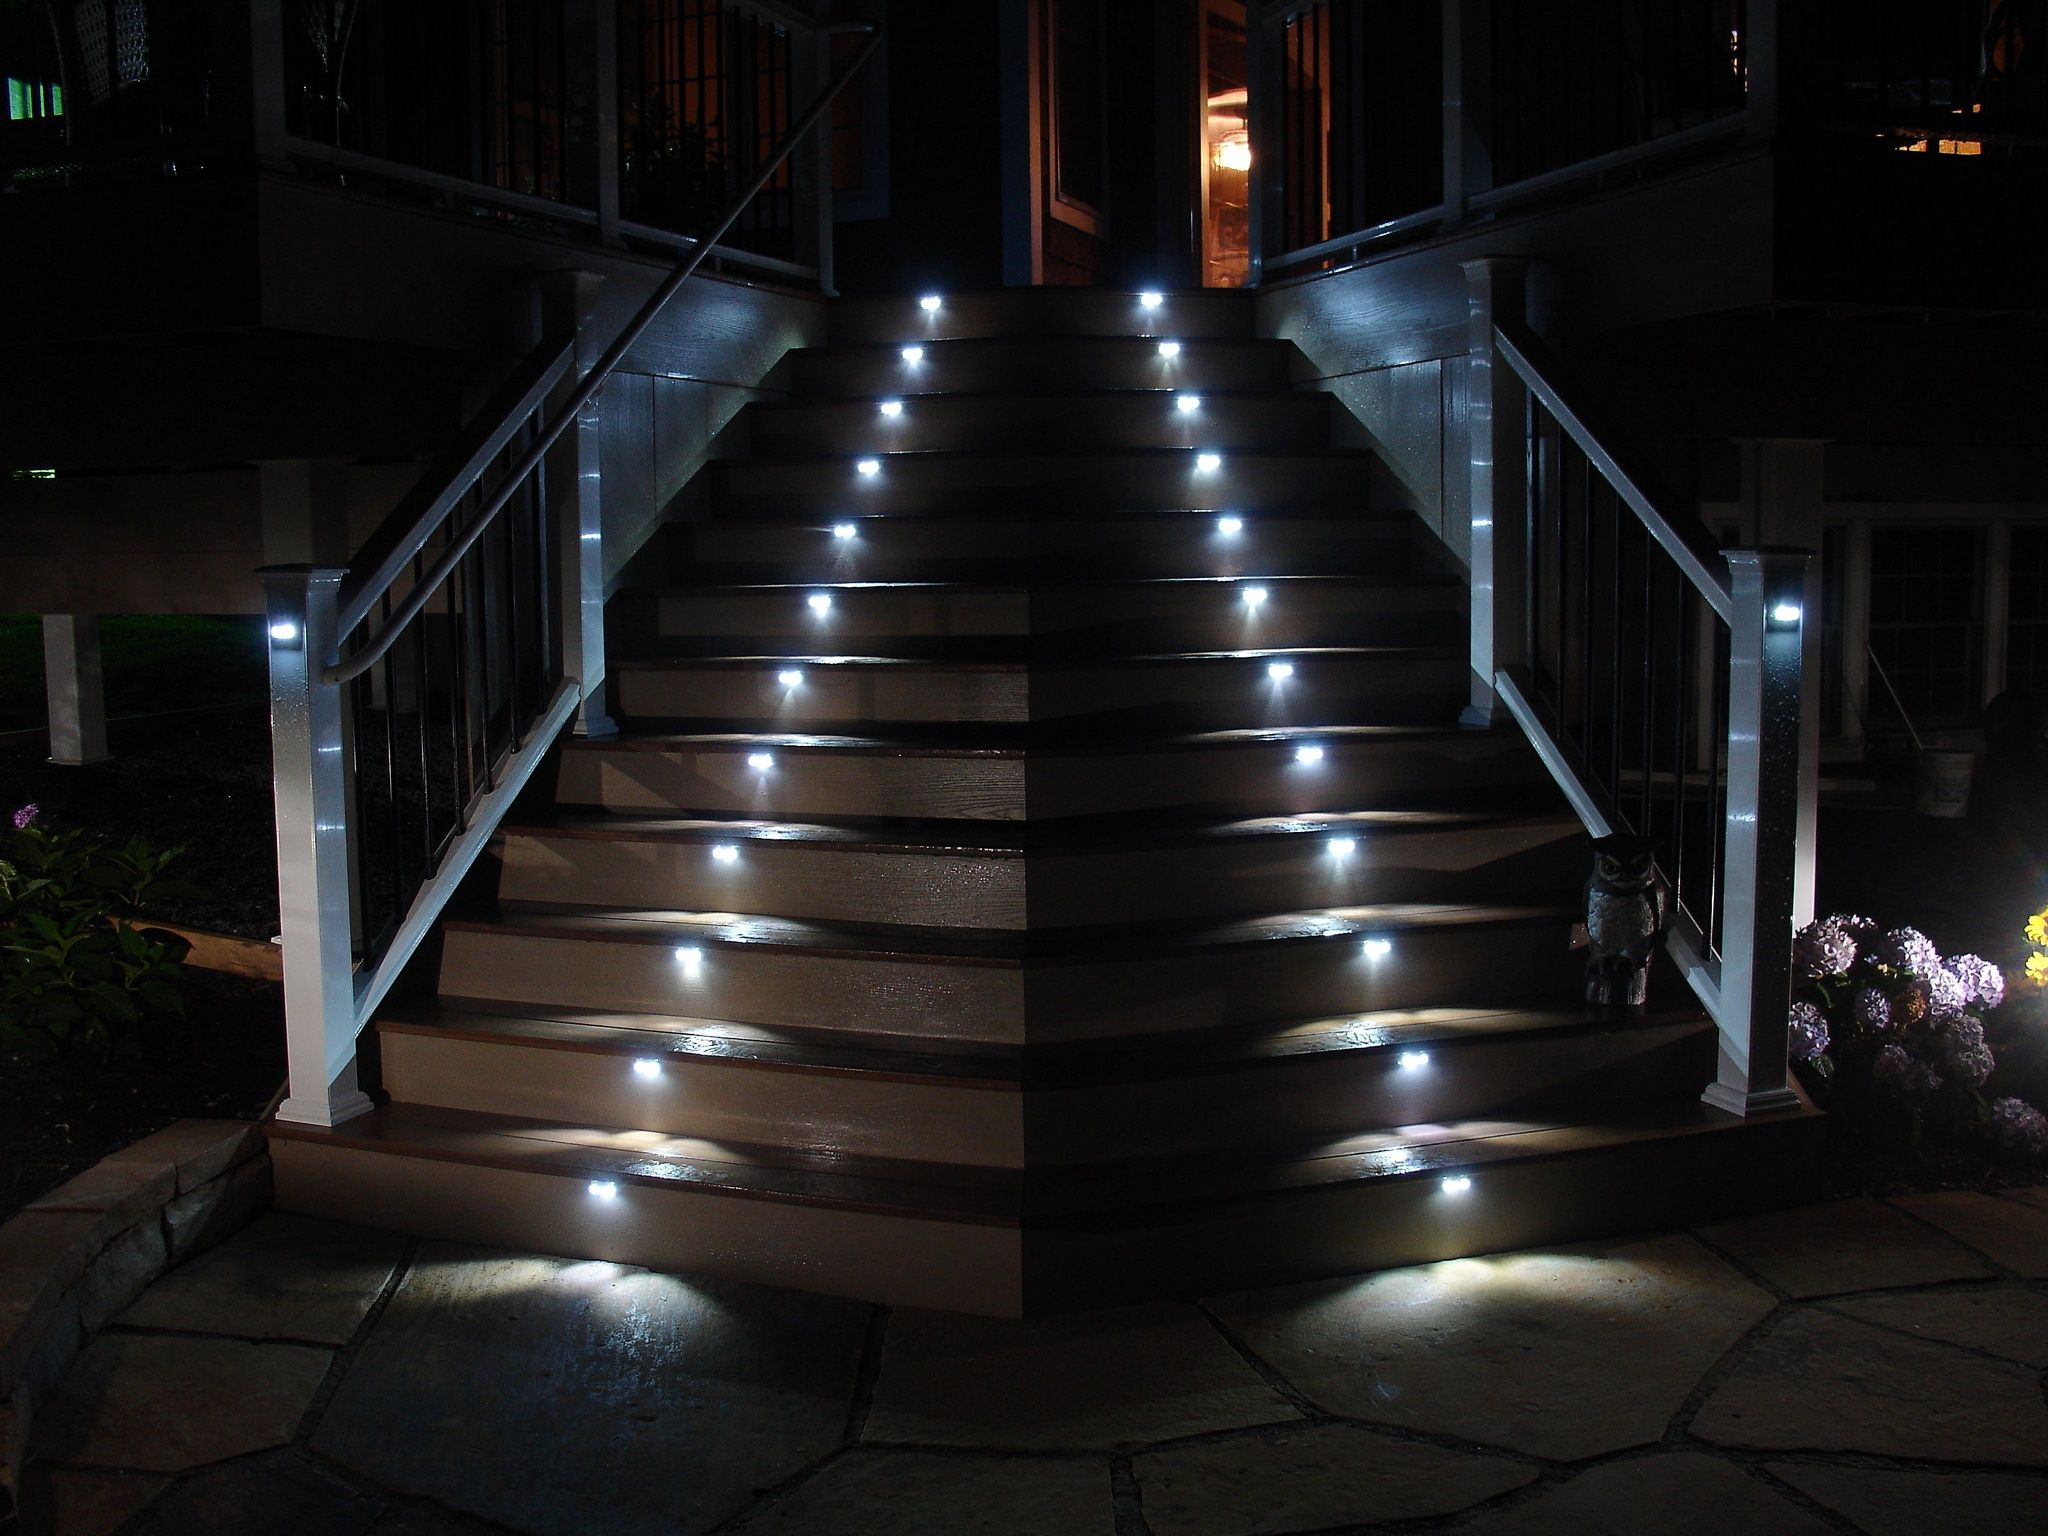 stair lighting. 1000 Images About Stair Lighting On Pinterest Wooden Staircases Accent And C